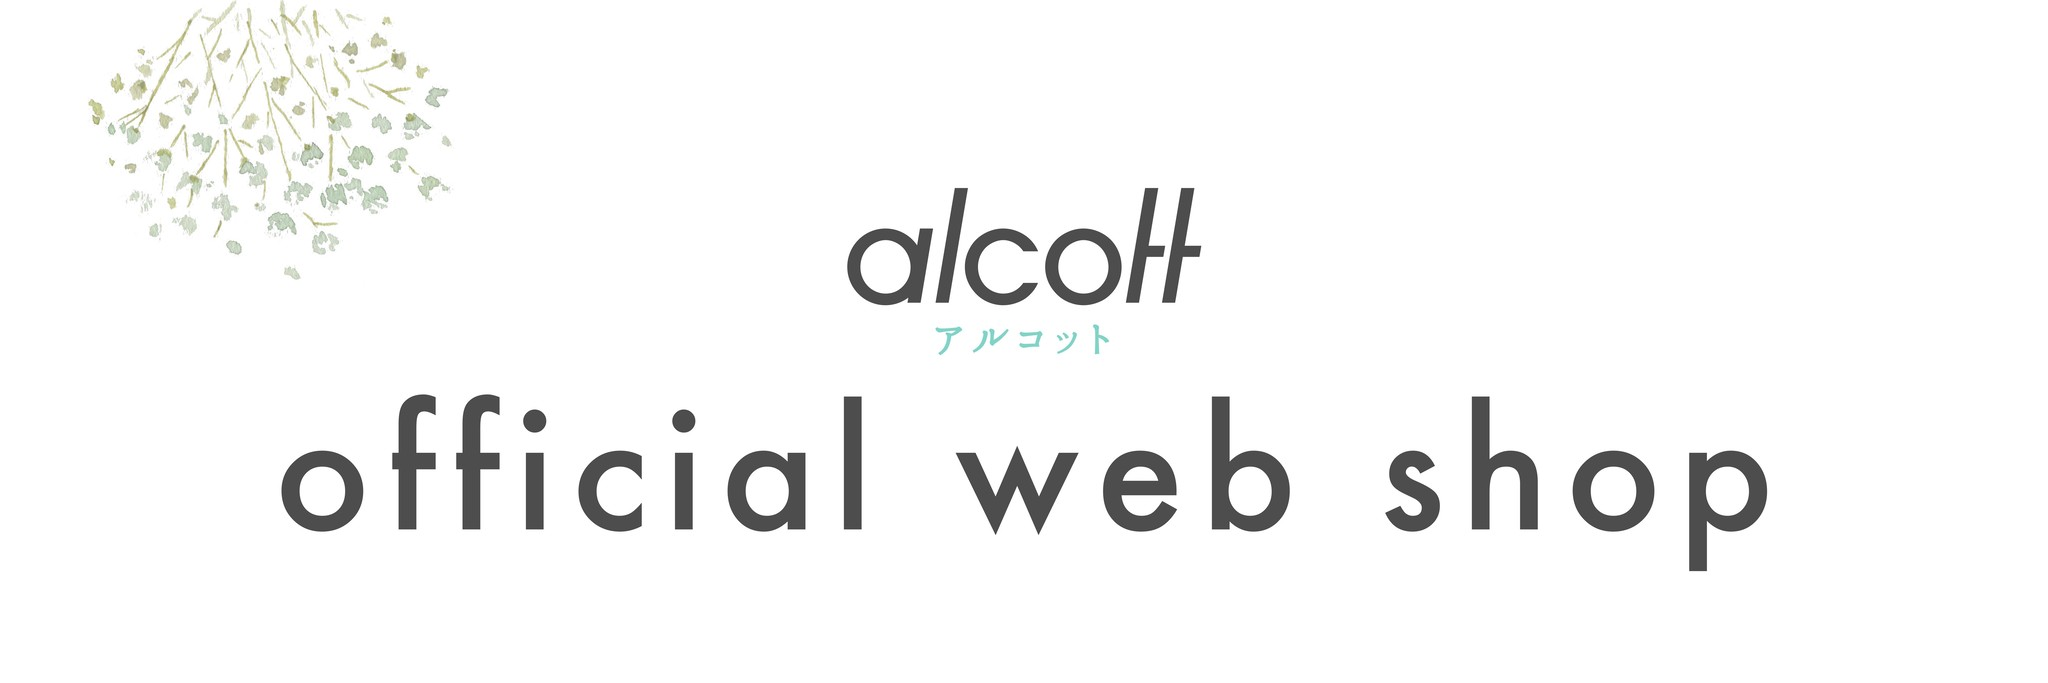 alcott official Web Shop